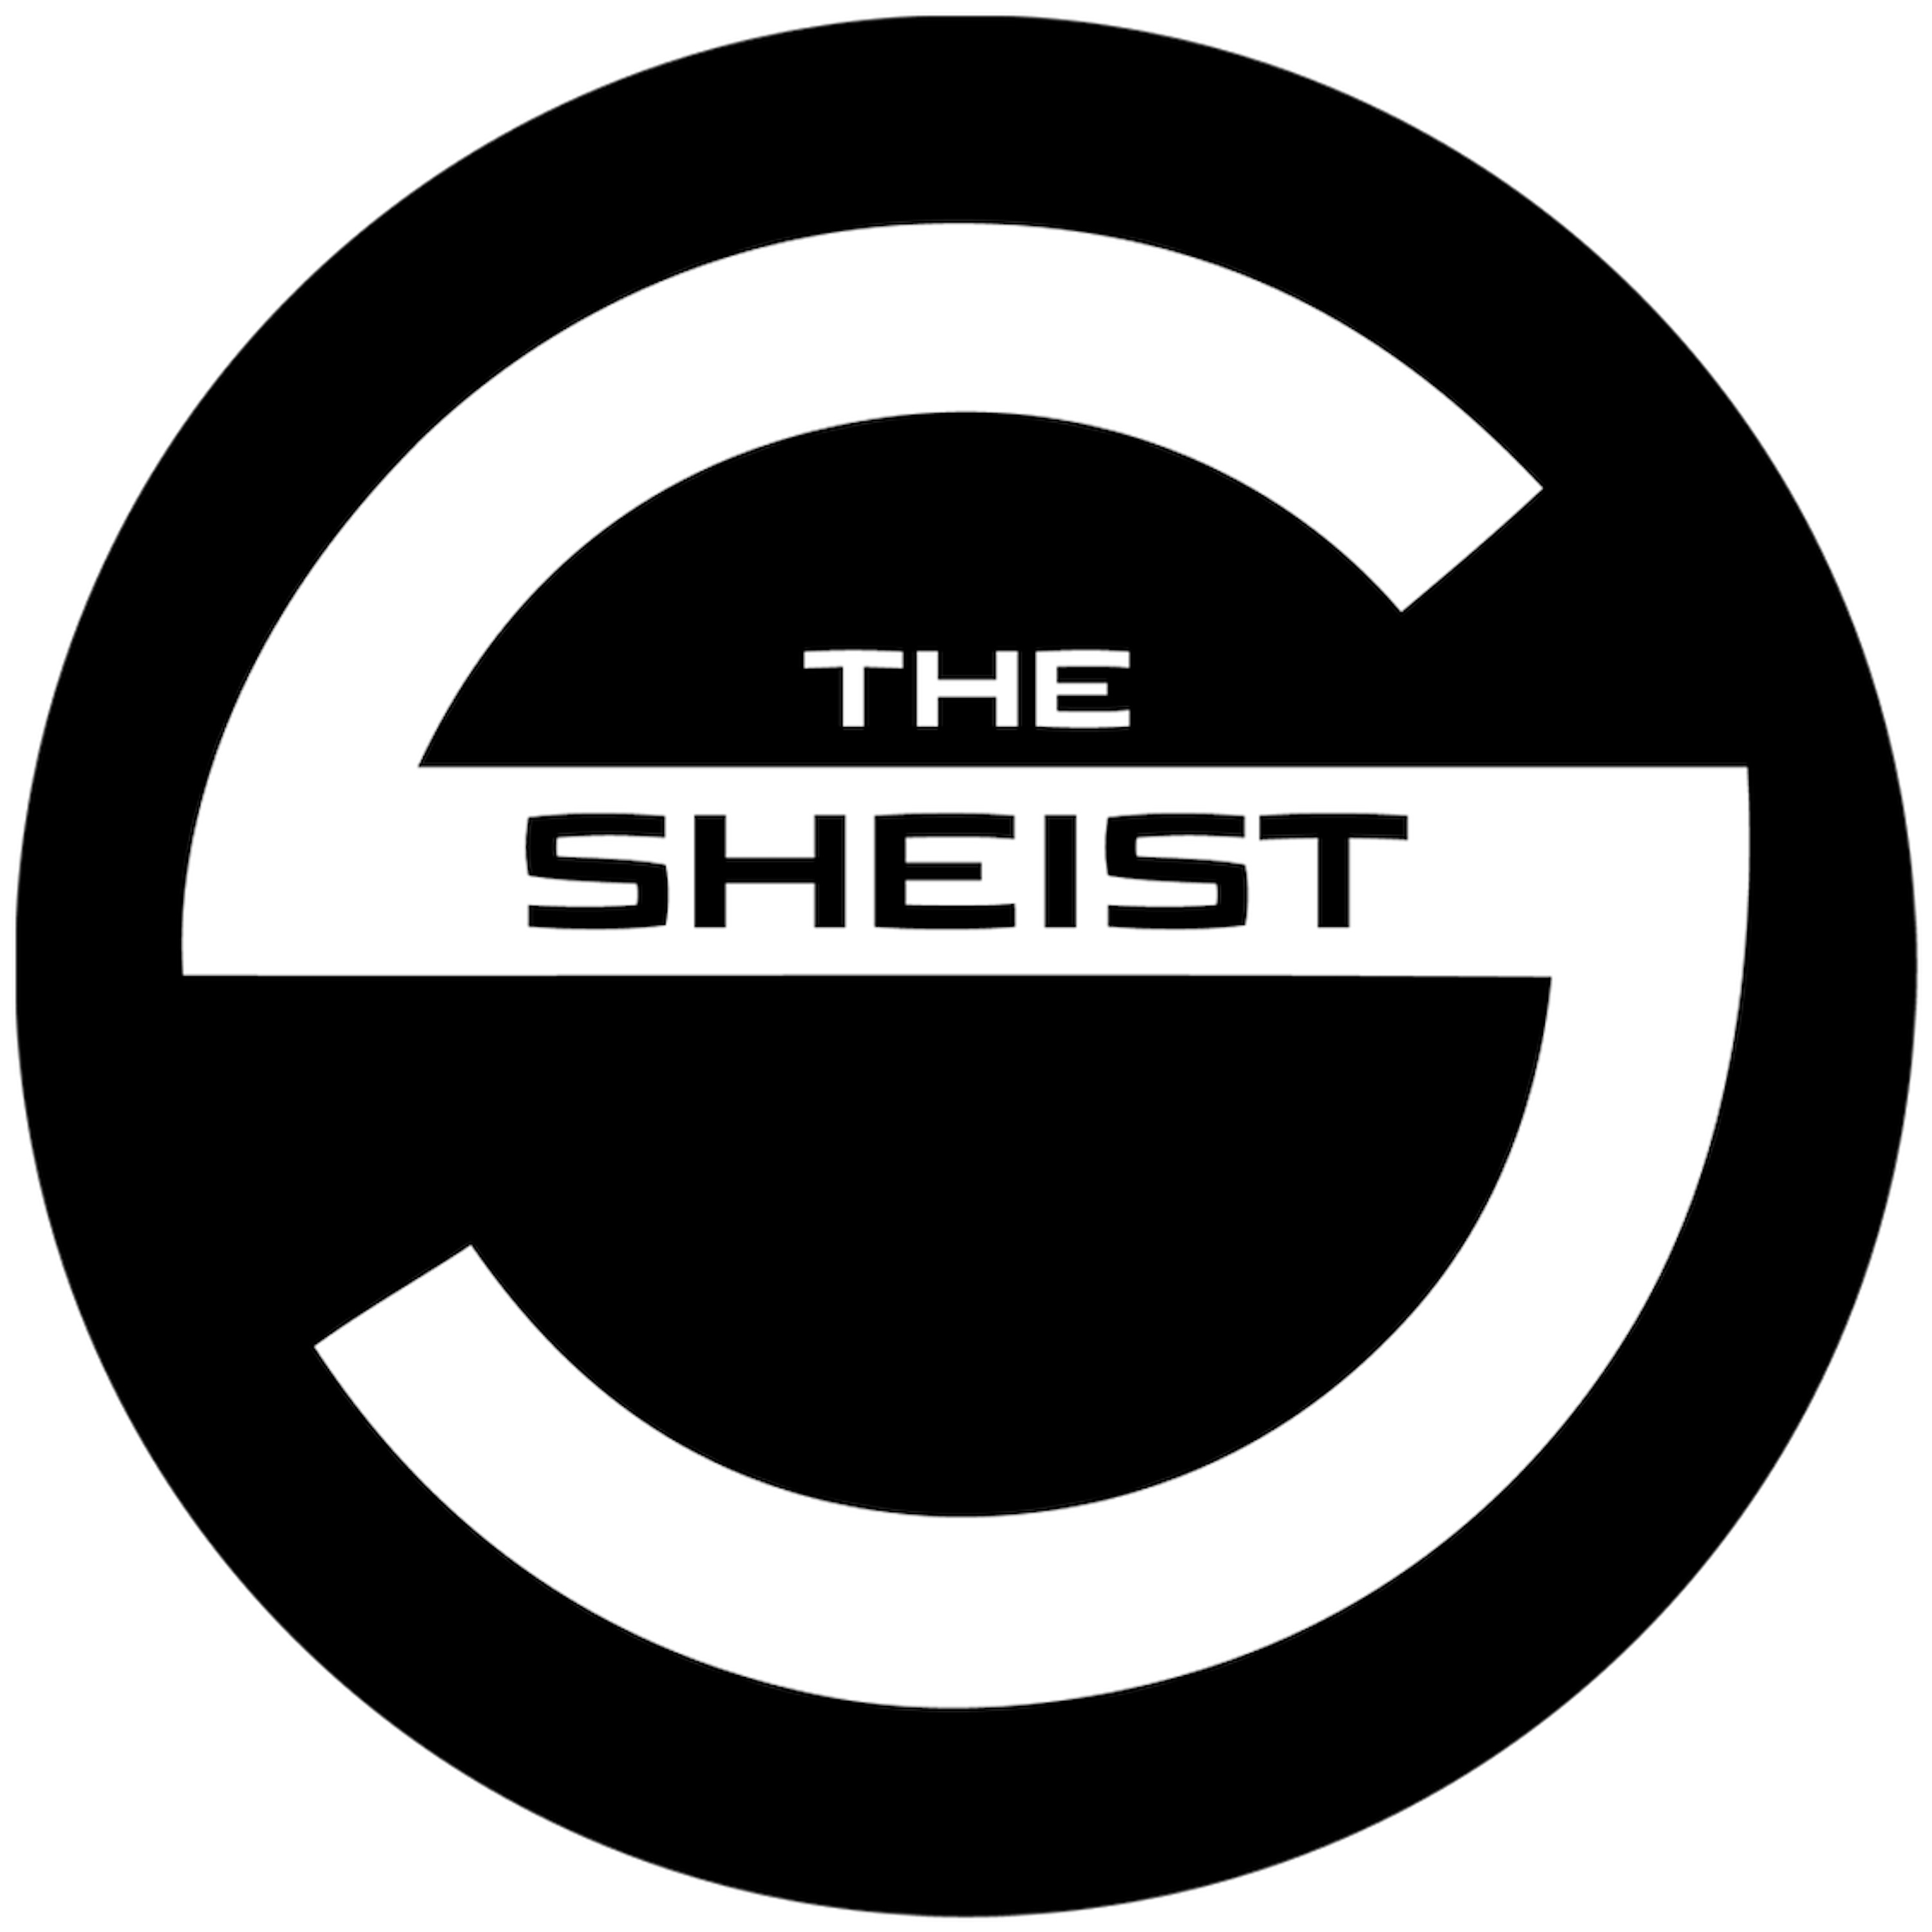 Artwork for podcast The Sheist Podcast